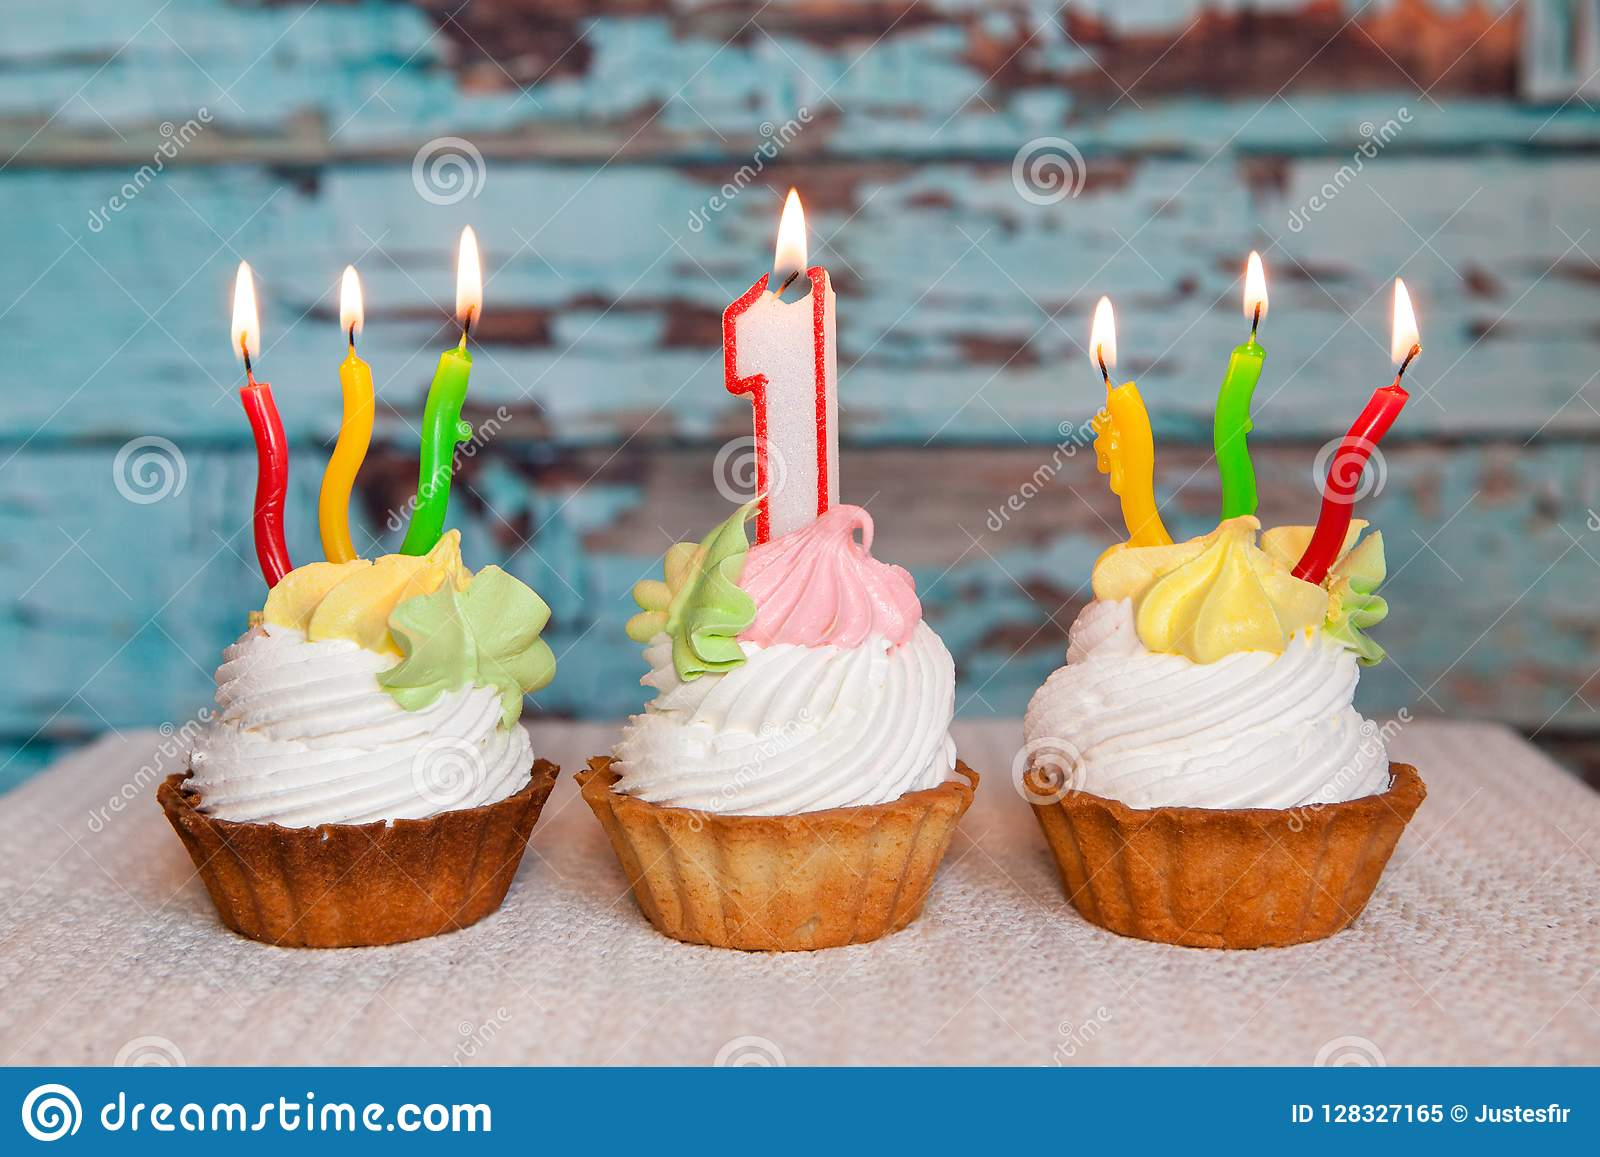 Happy First Birthday Cake And Number One Candle On Blue Background